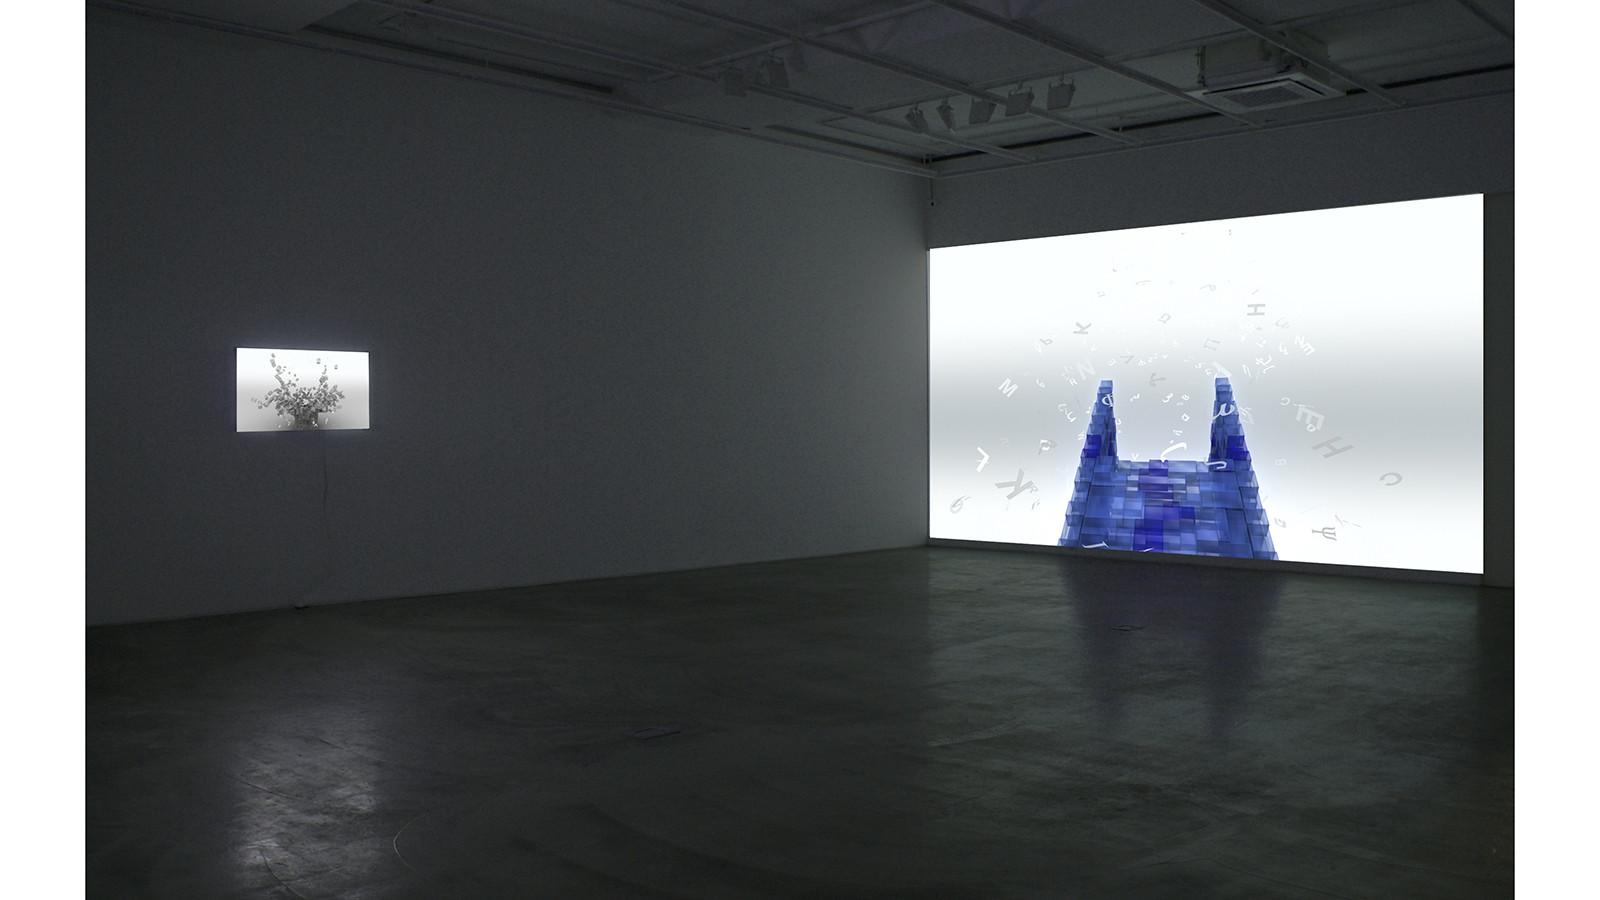 Installation view of solo exhibition, Evidence of the Invisible, Gallery Simon, 2012